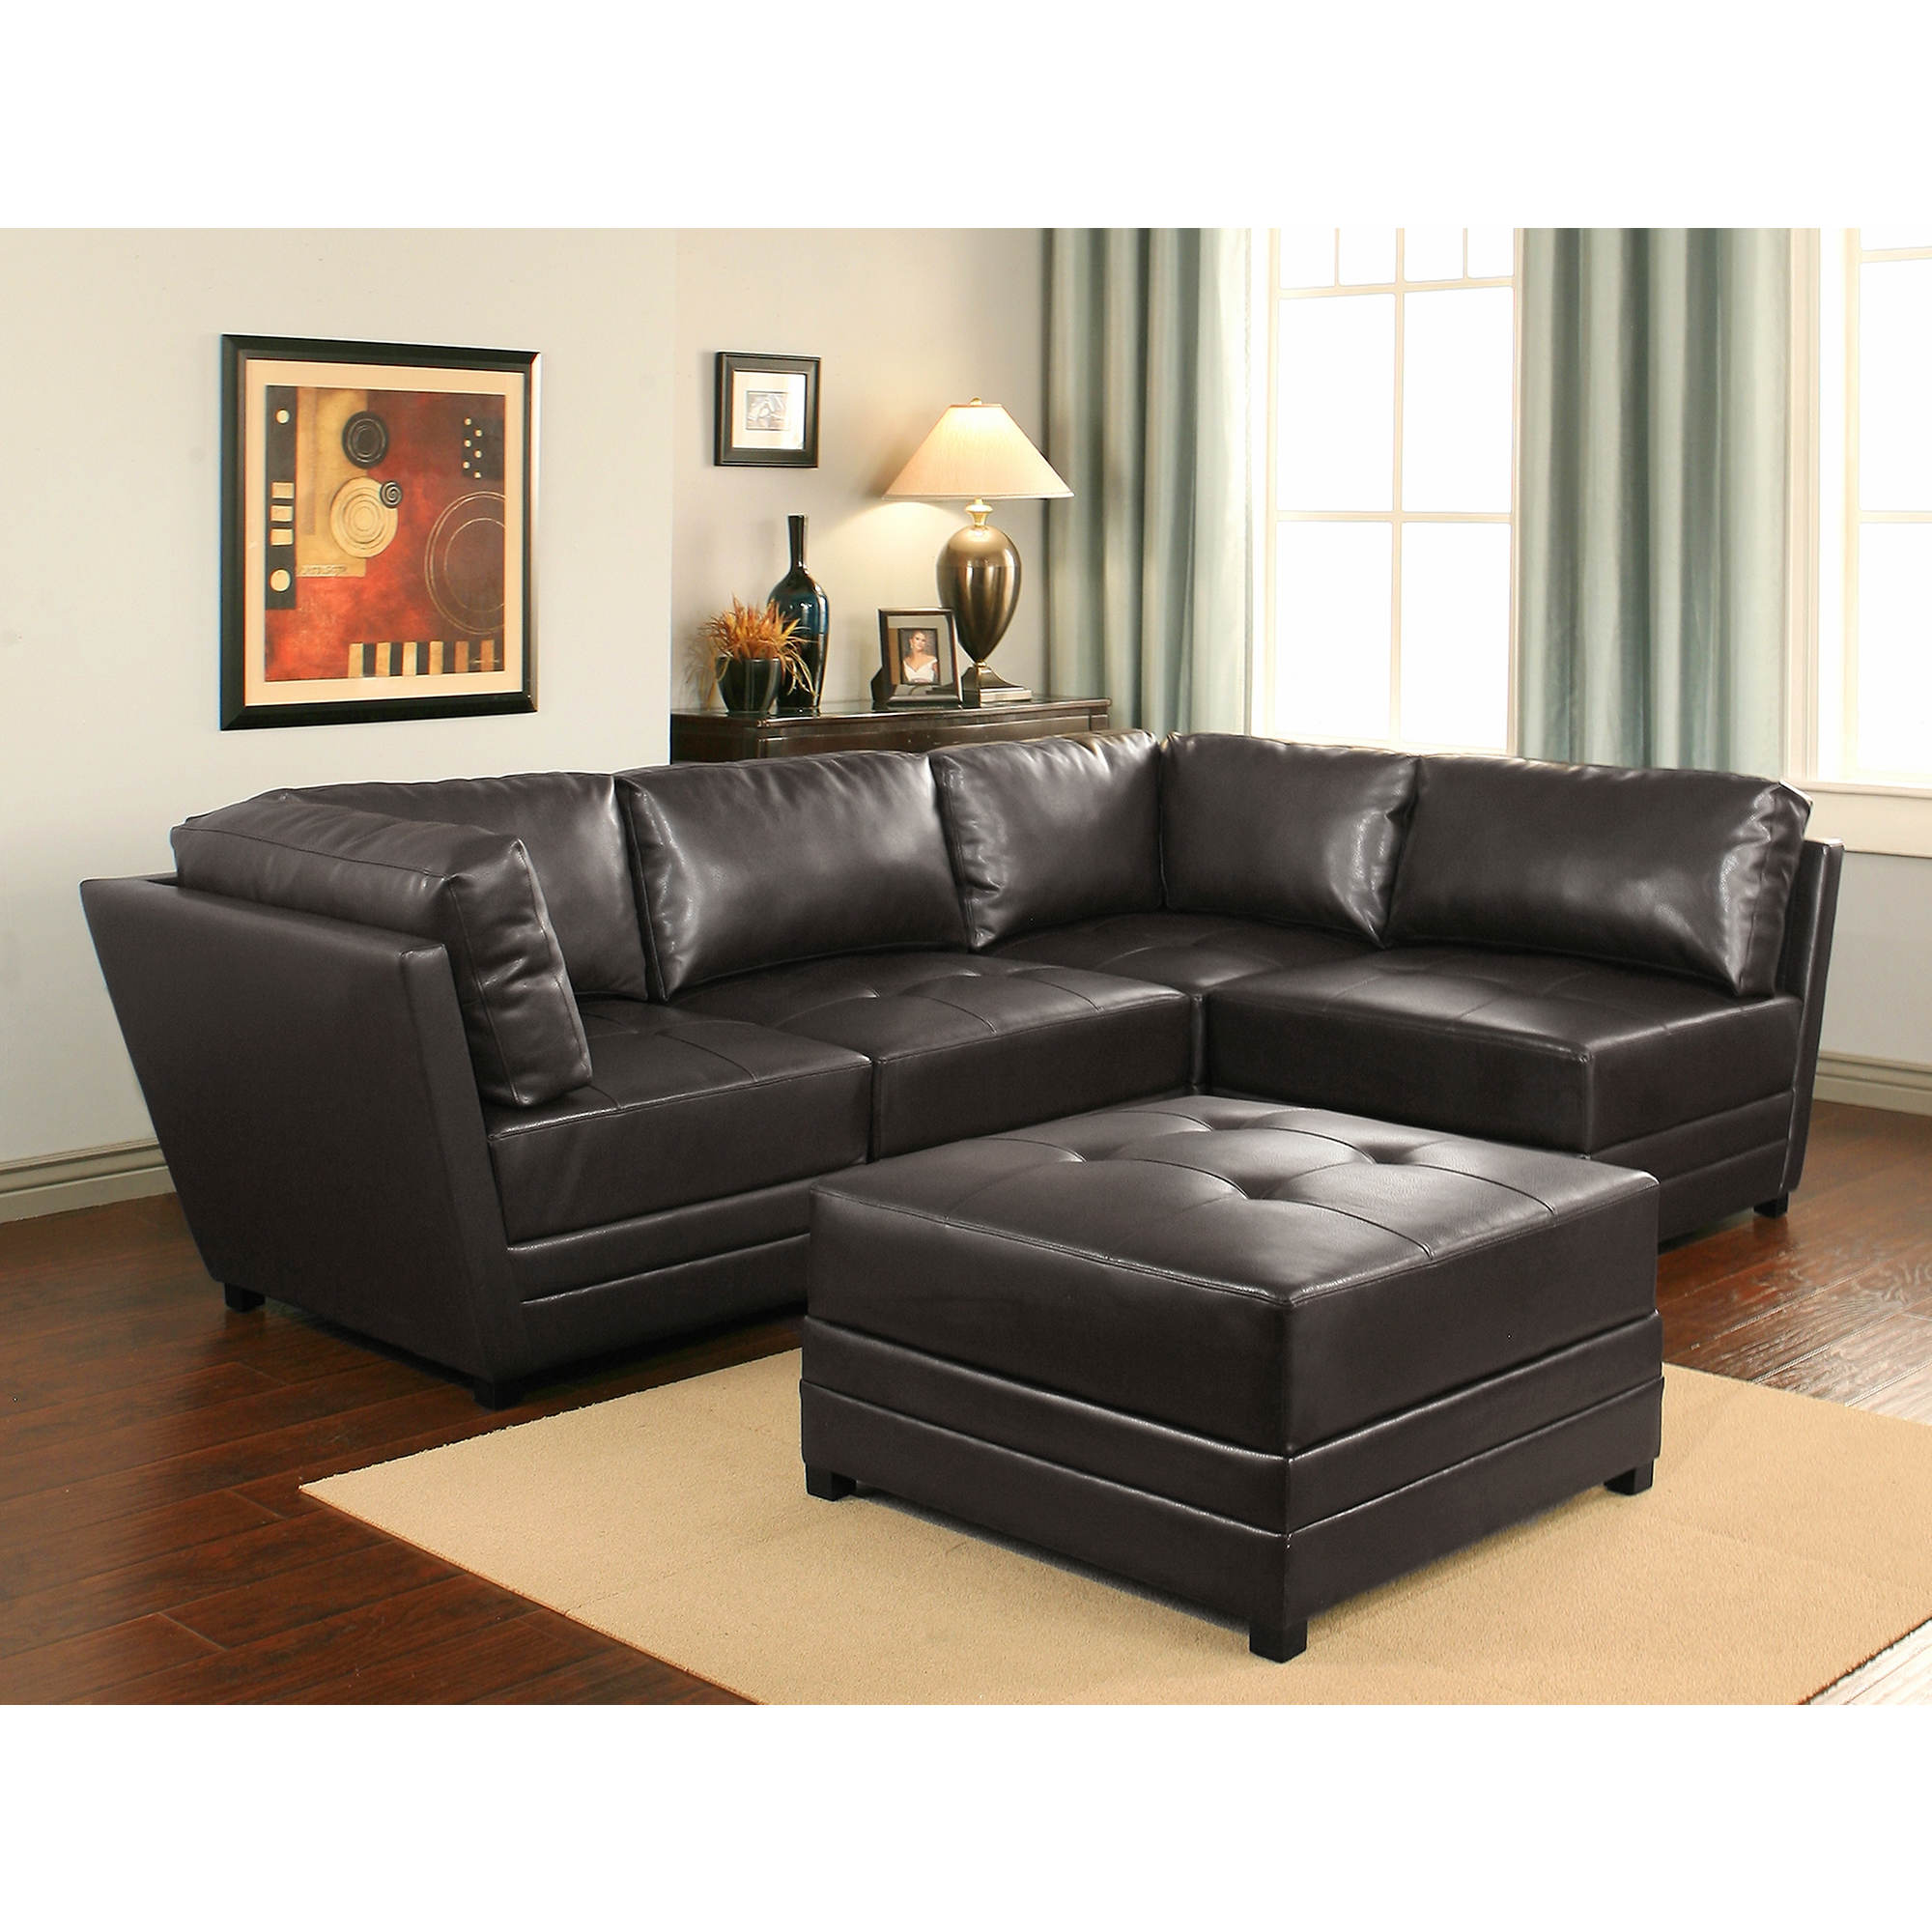 Abbyson Living Lowell 5-Pc. Leather Modular Sectional